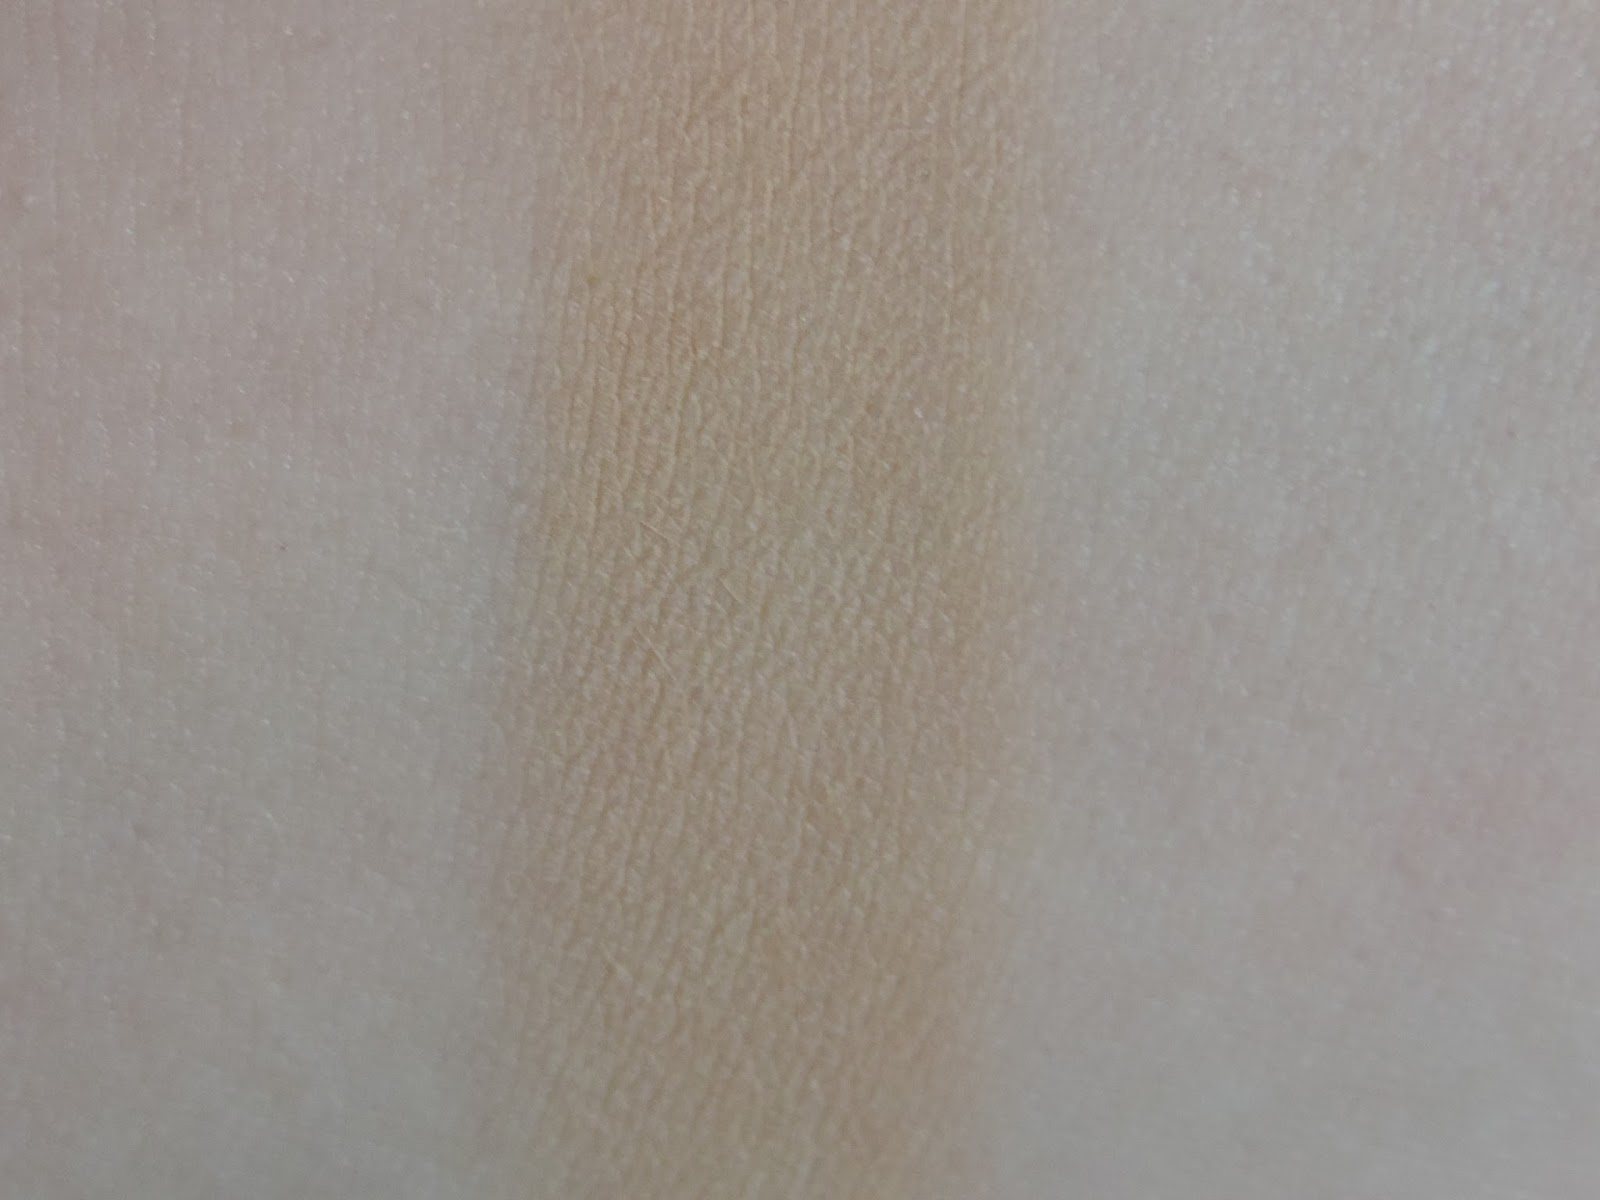 Swatch of Urban Decay Naked Skin Ultra Definition Powder Foundation in Medium Neutral